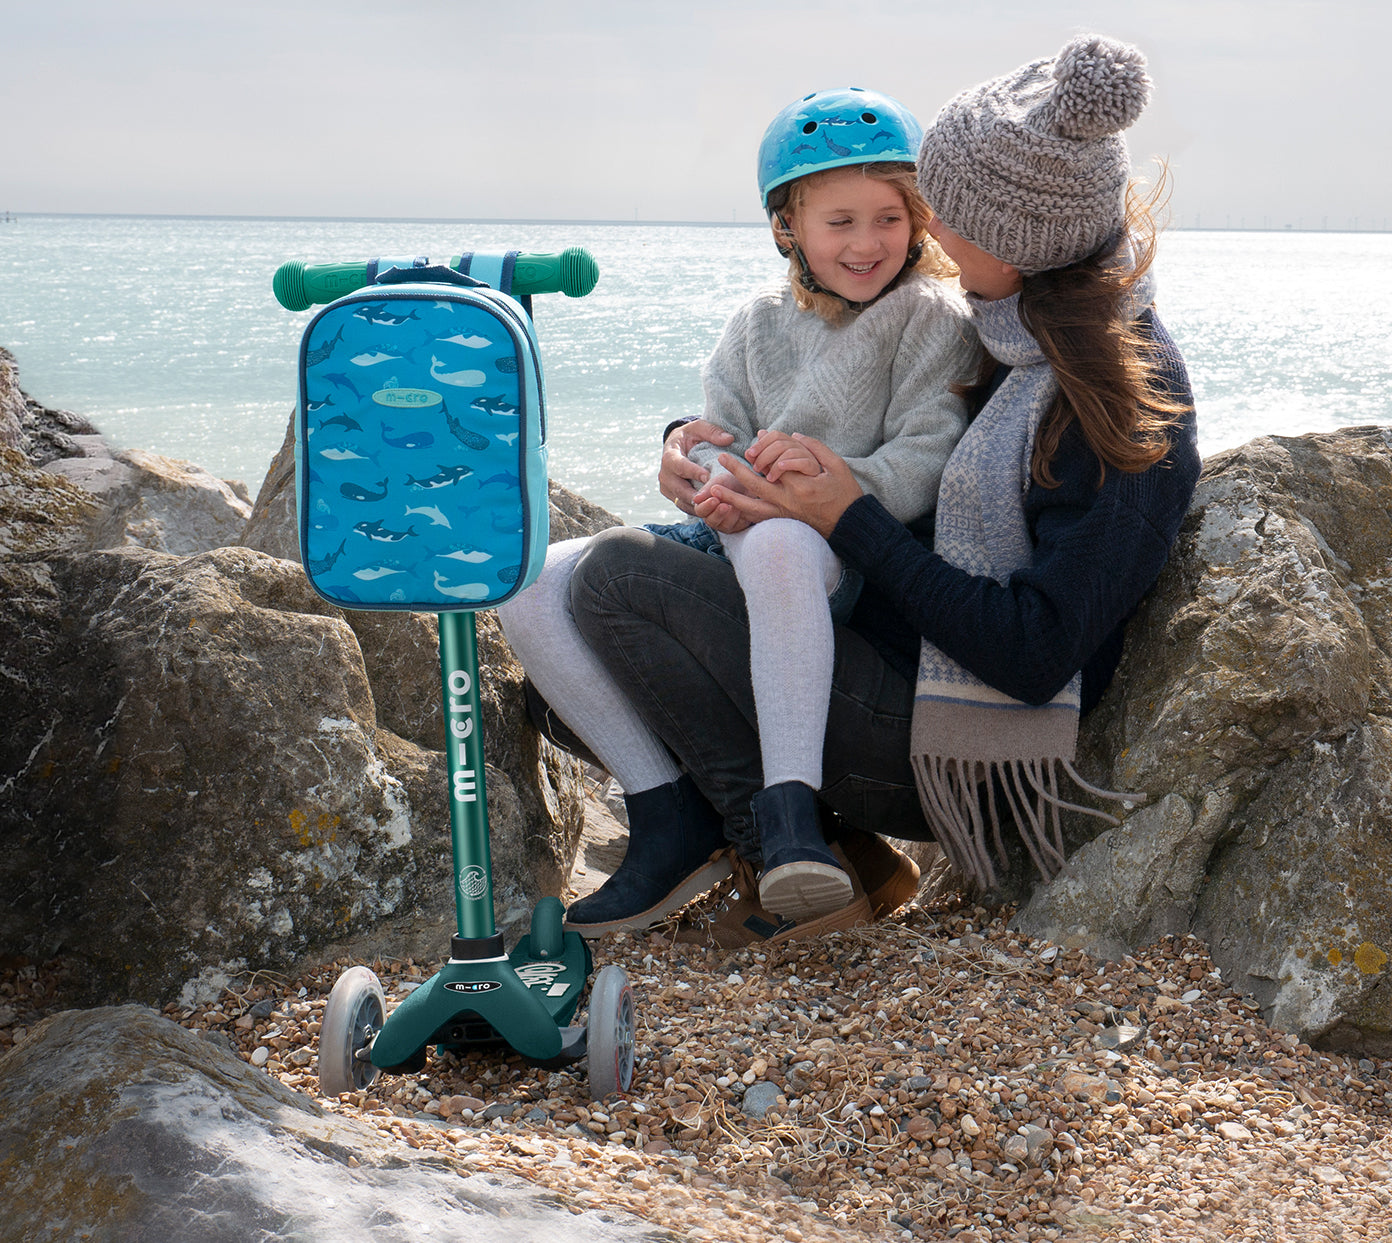 Win a set of scooters for the whole family worth £1000